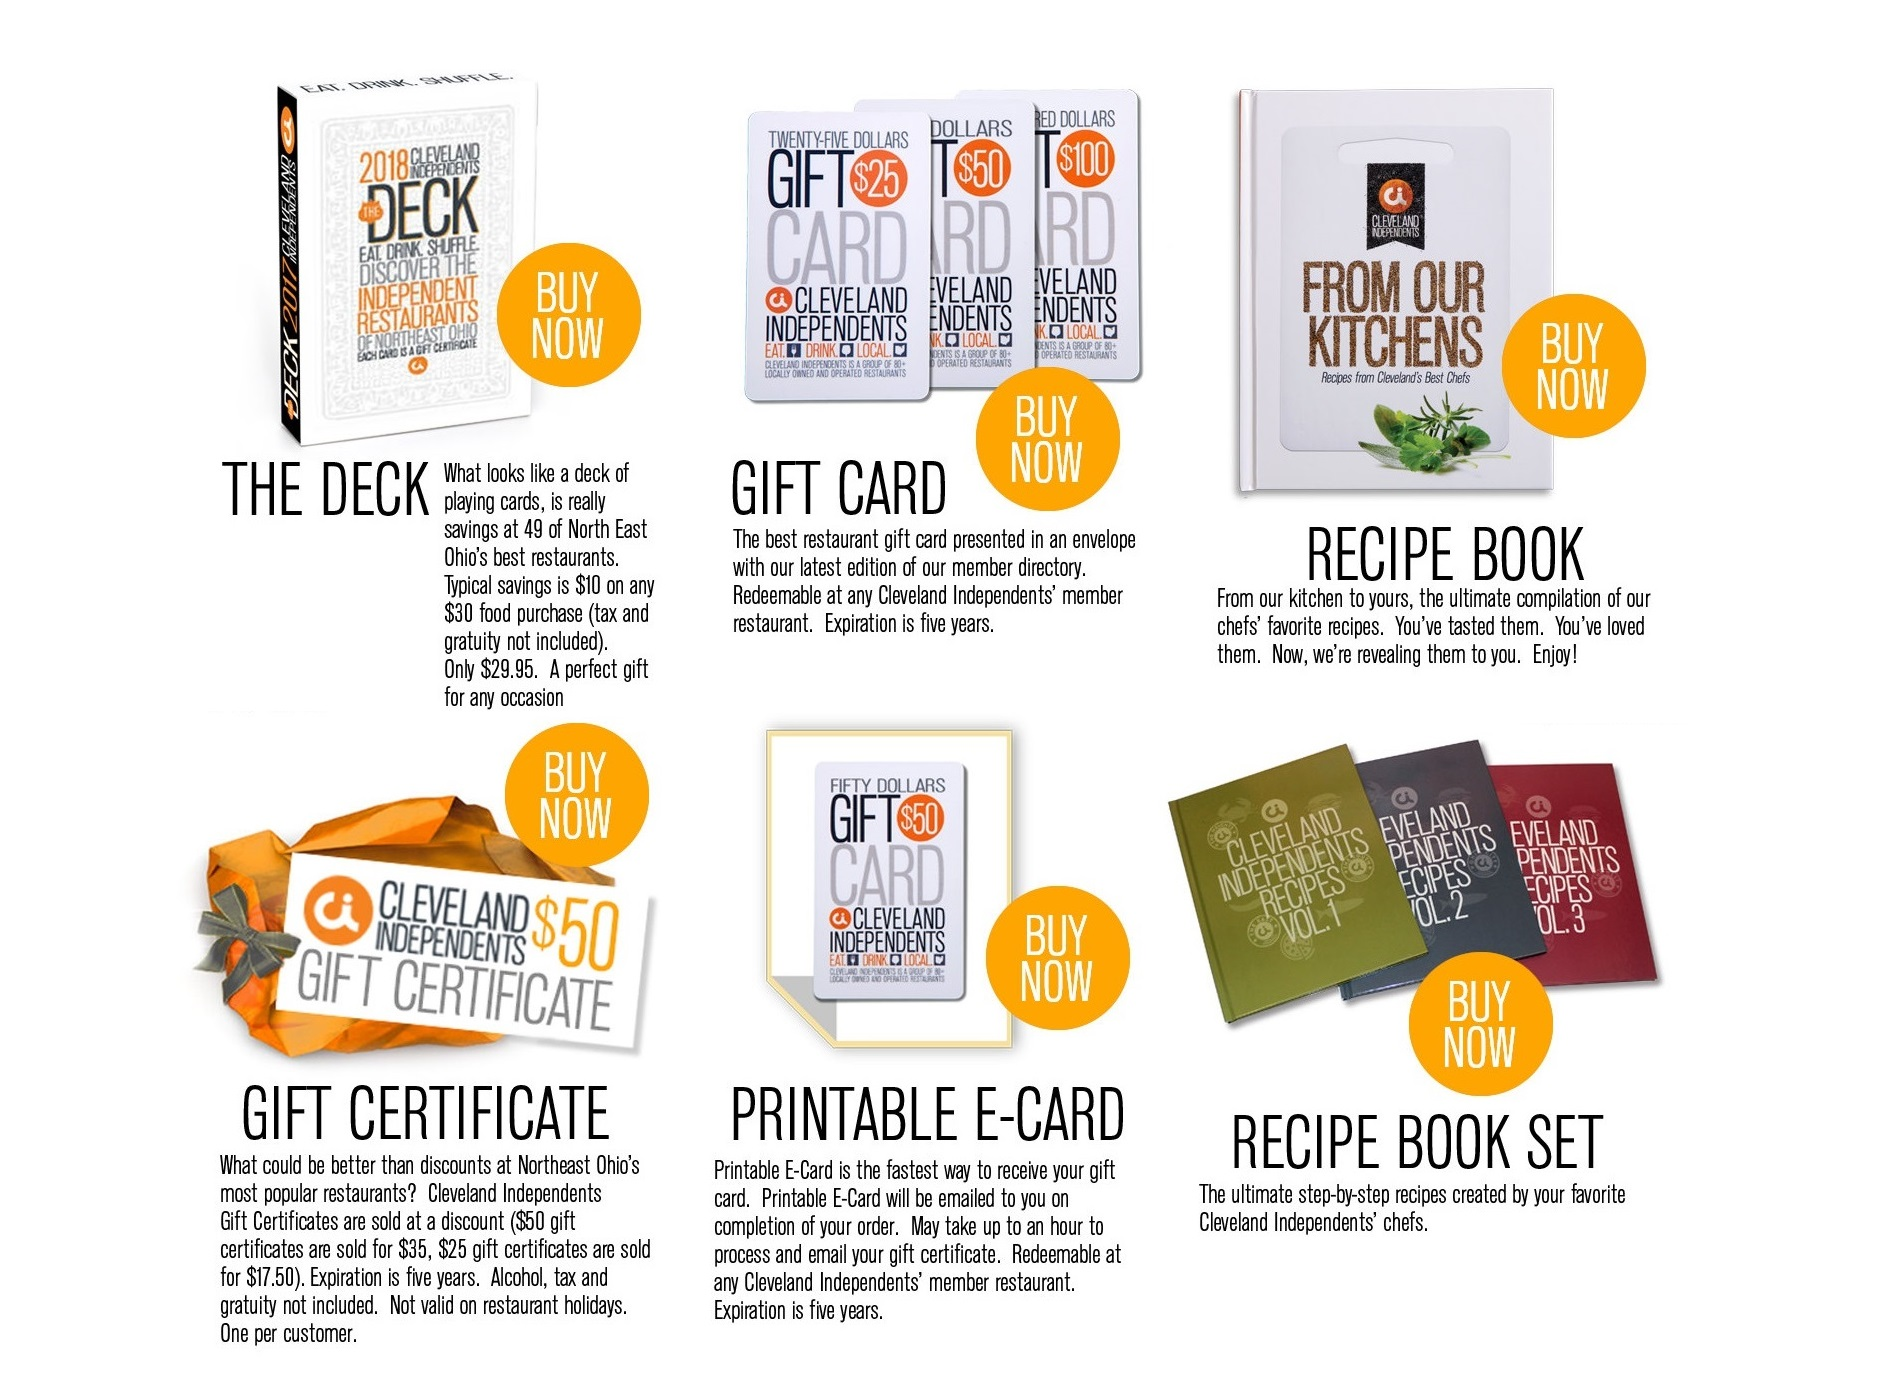 Cleveland Independents Buy Gift Cards And Certificate For The Best